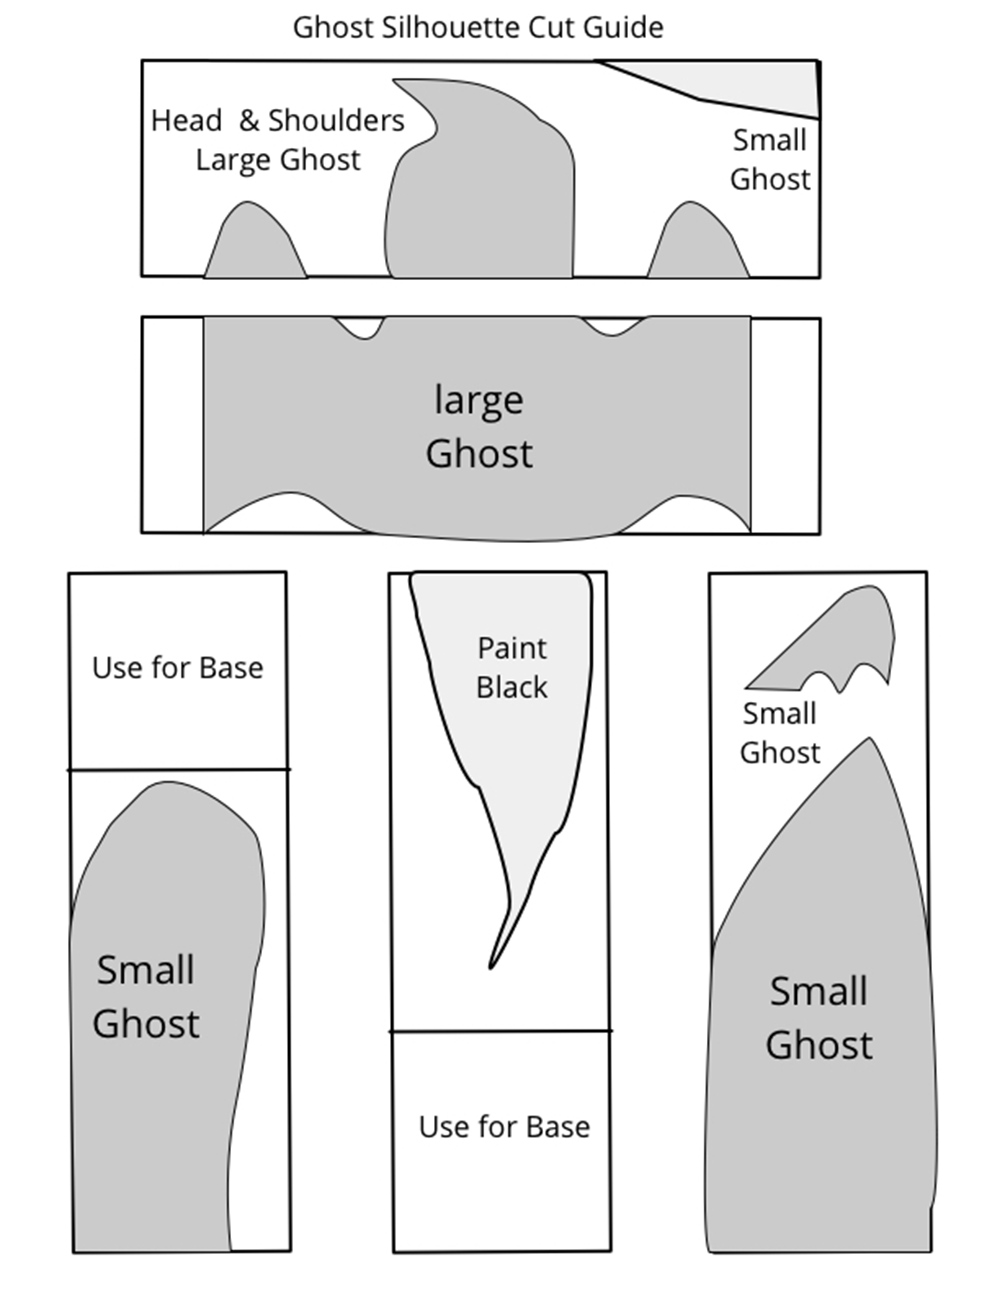 ghost-silhouette-cut-guide-1